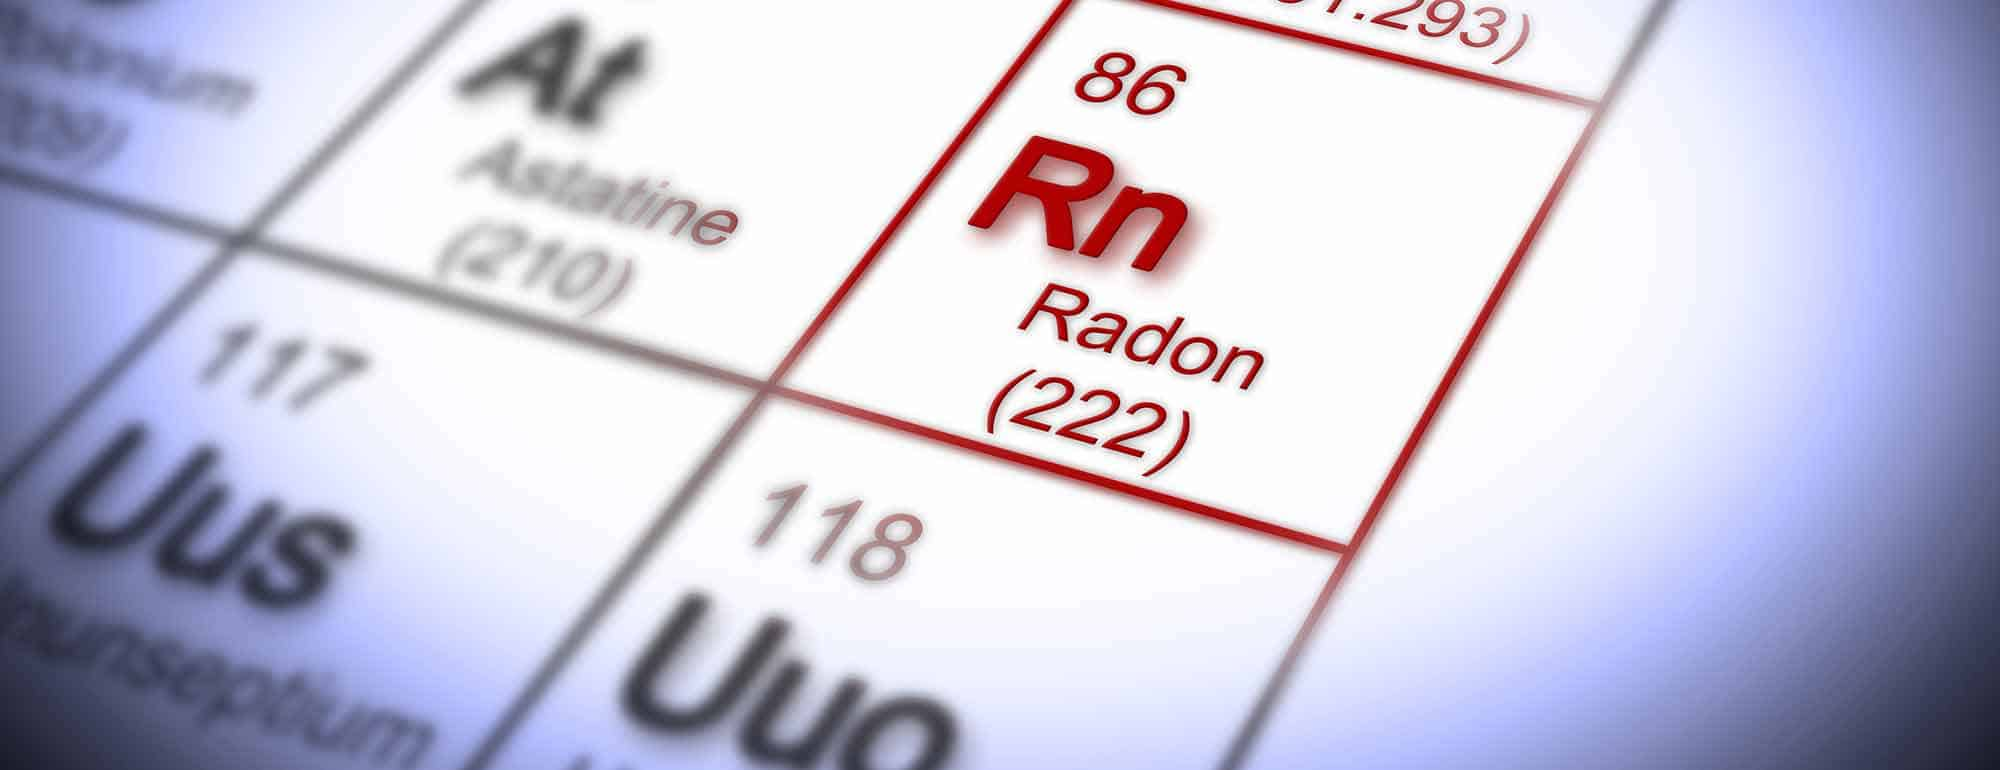 Radon Services Colorado Springs